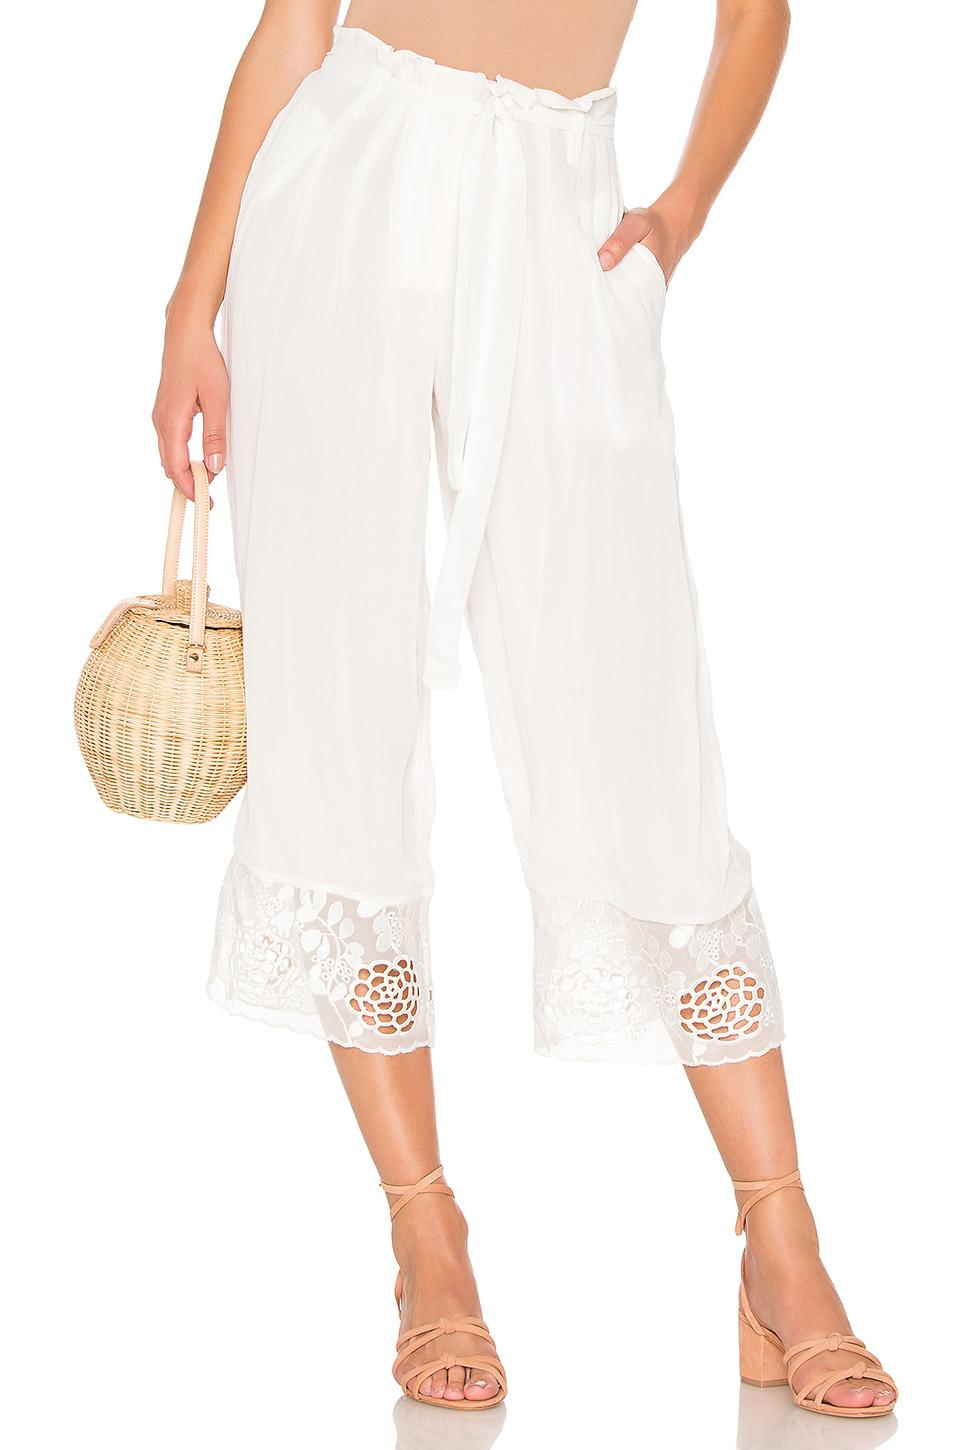 House Of Harlow 1960 X Revolve Dewi Pant In White. In Ivory